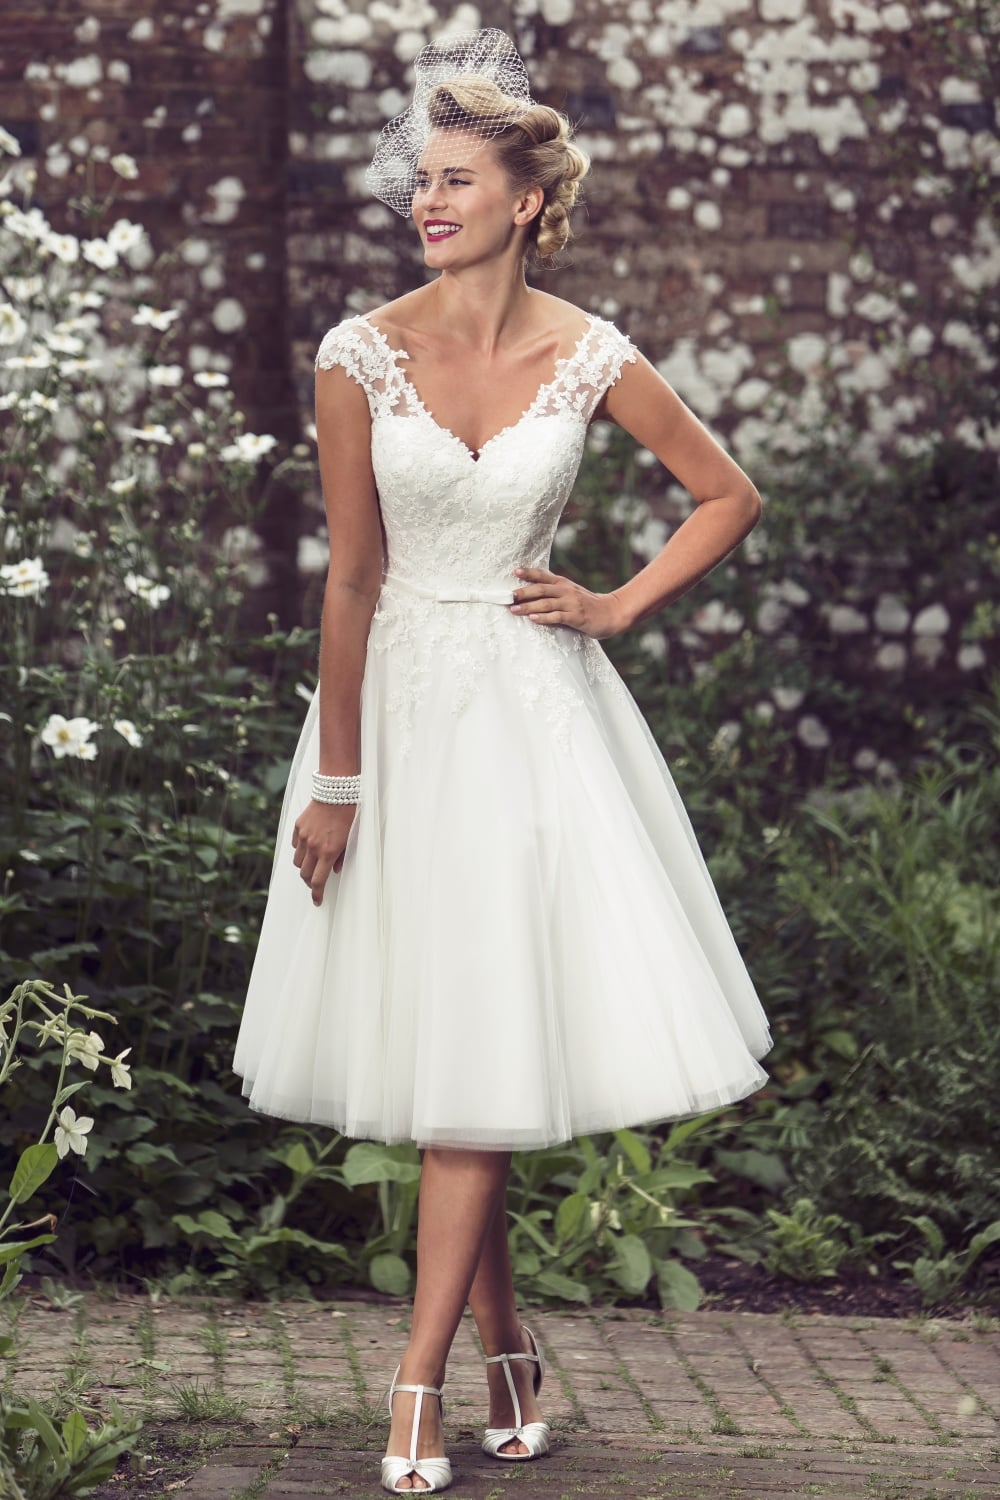 Lottie 1950s Tea Length Short Vintage Wedding Dress